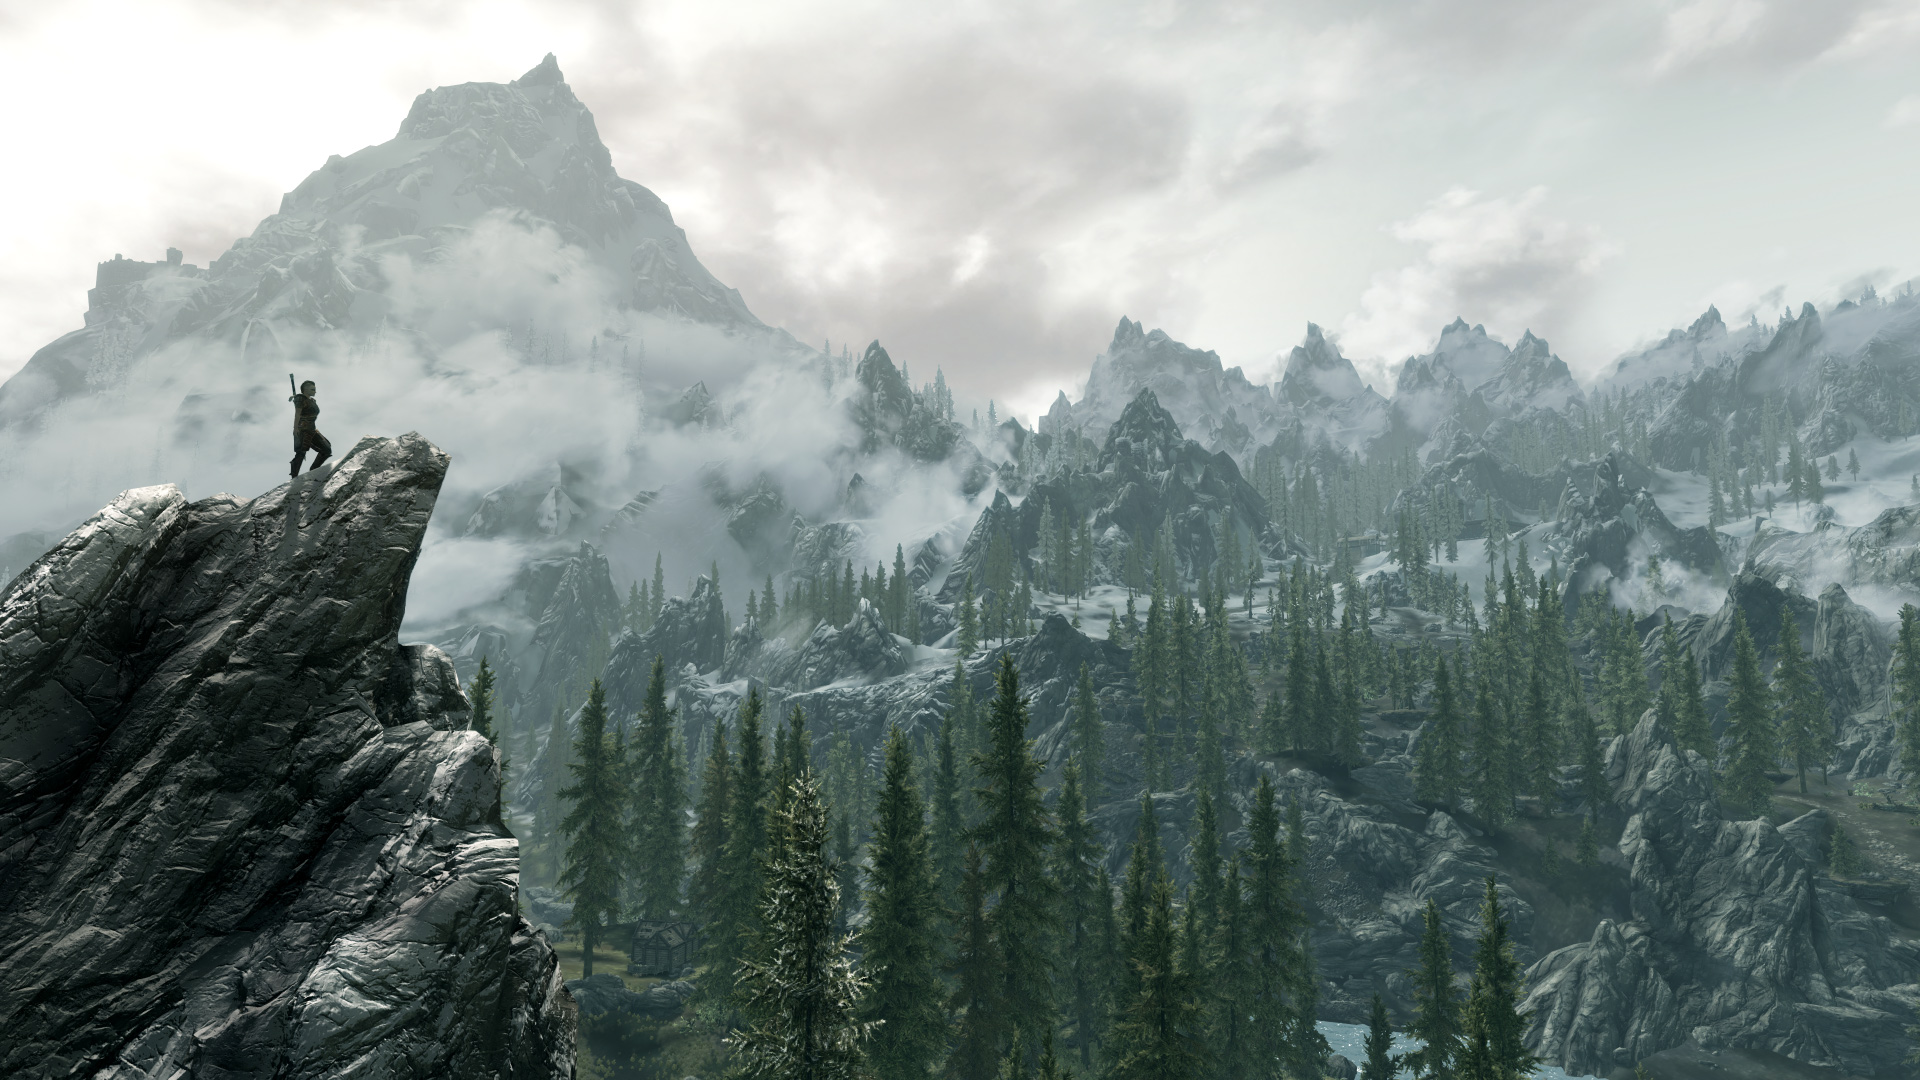 Skyrim wallpaper 1080p peasant miscers with small screens stay out forums - Wallpaper 1080p for pc ...